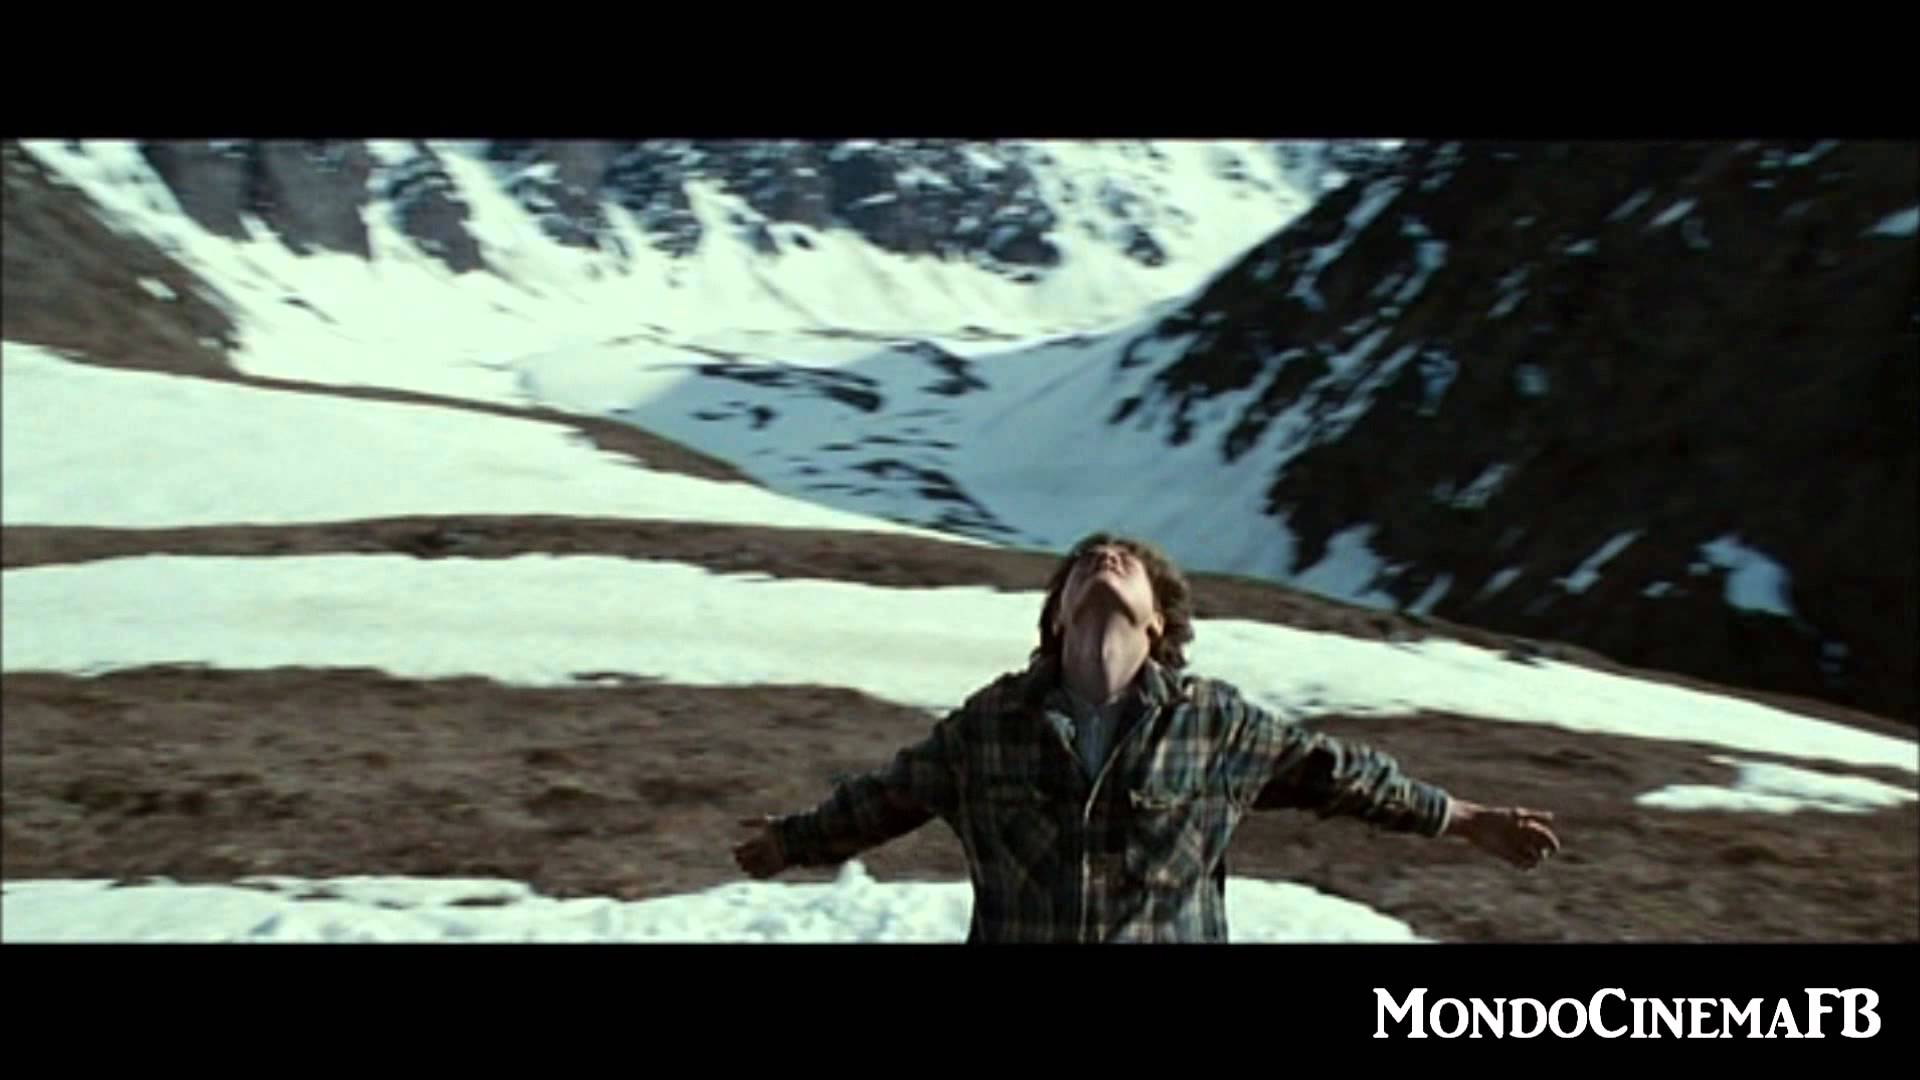 INTO THE WILD - The Wolf - YouTube